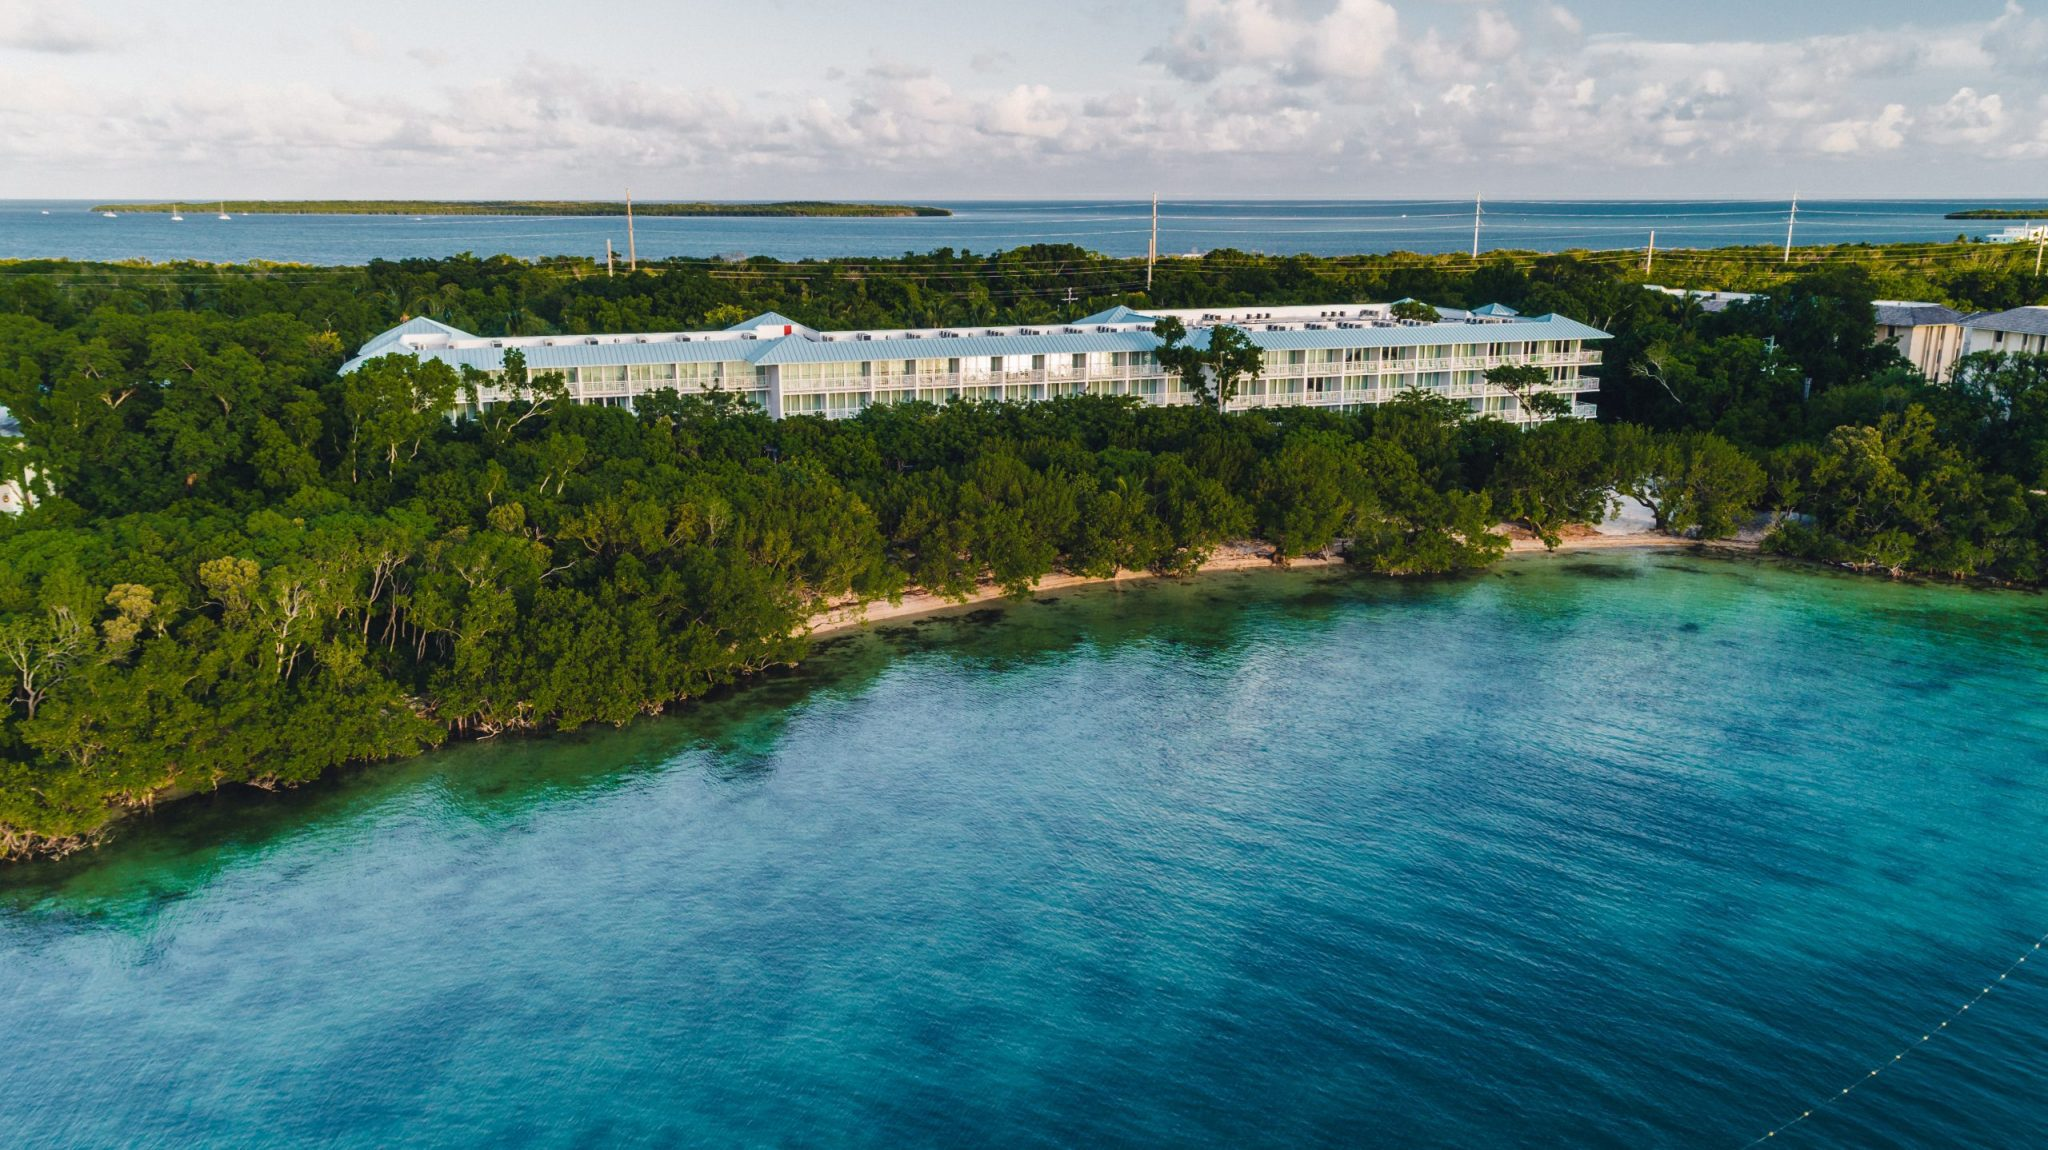 Drone photography of a beach front hotel